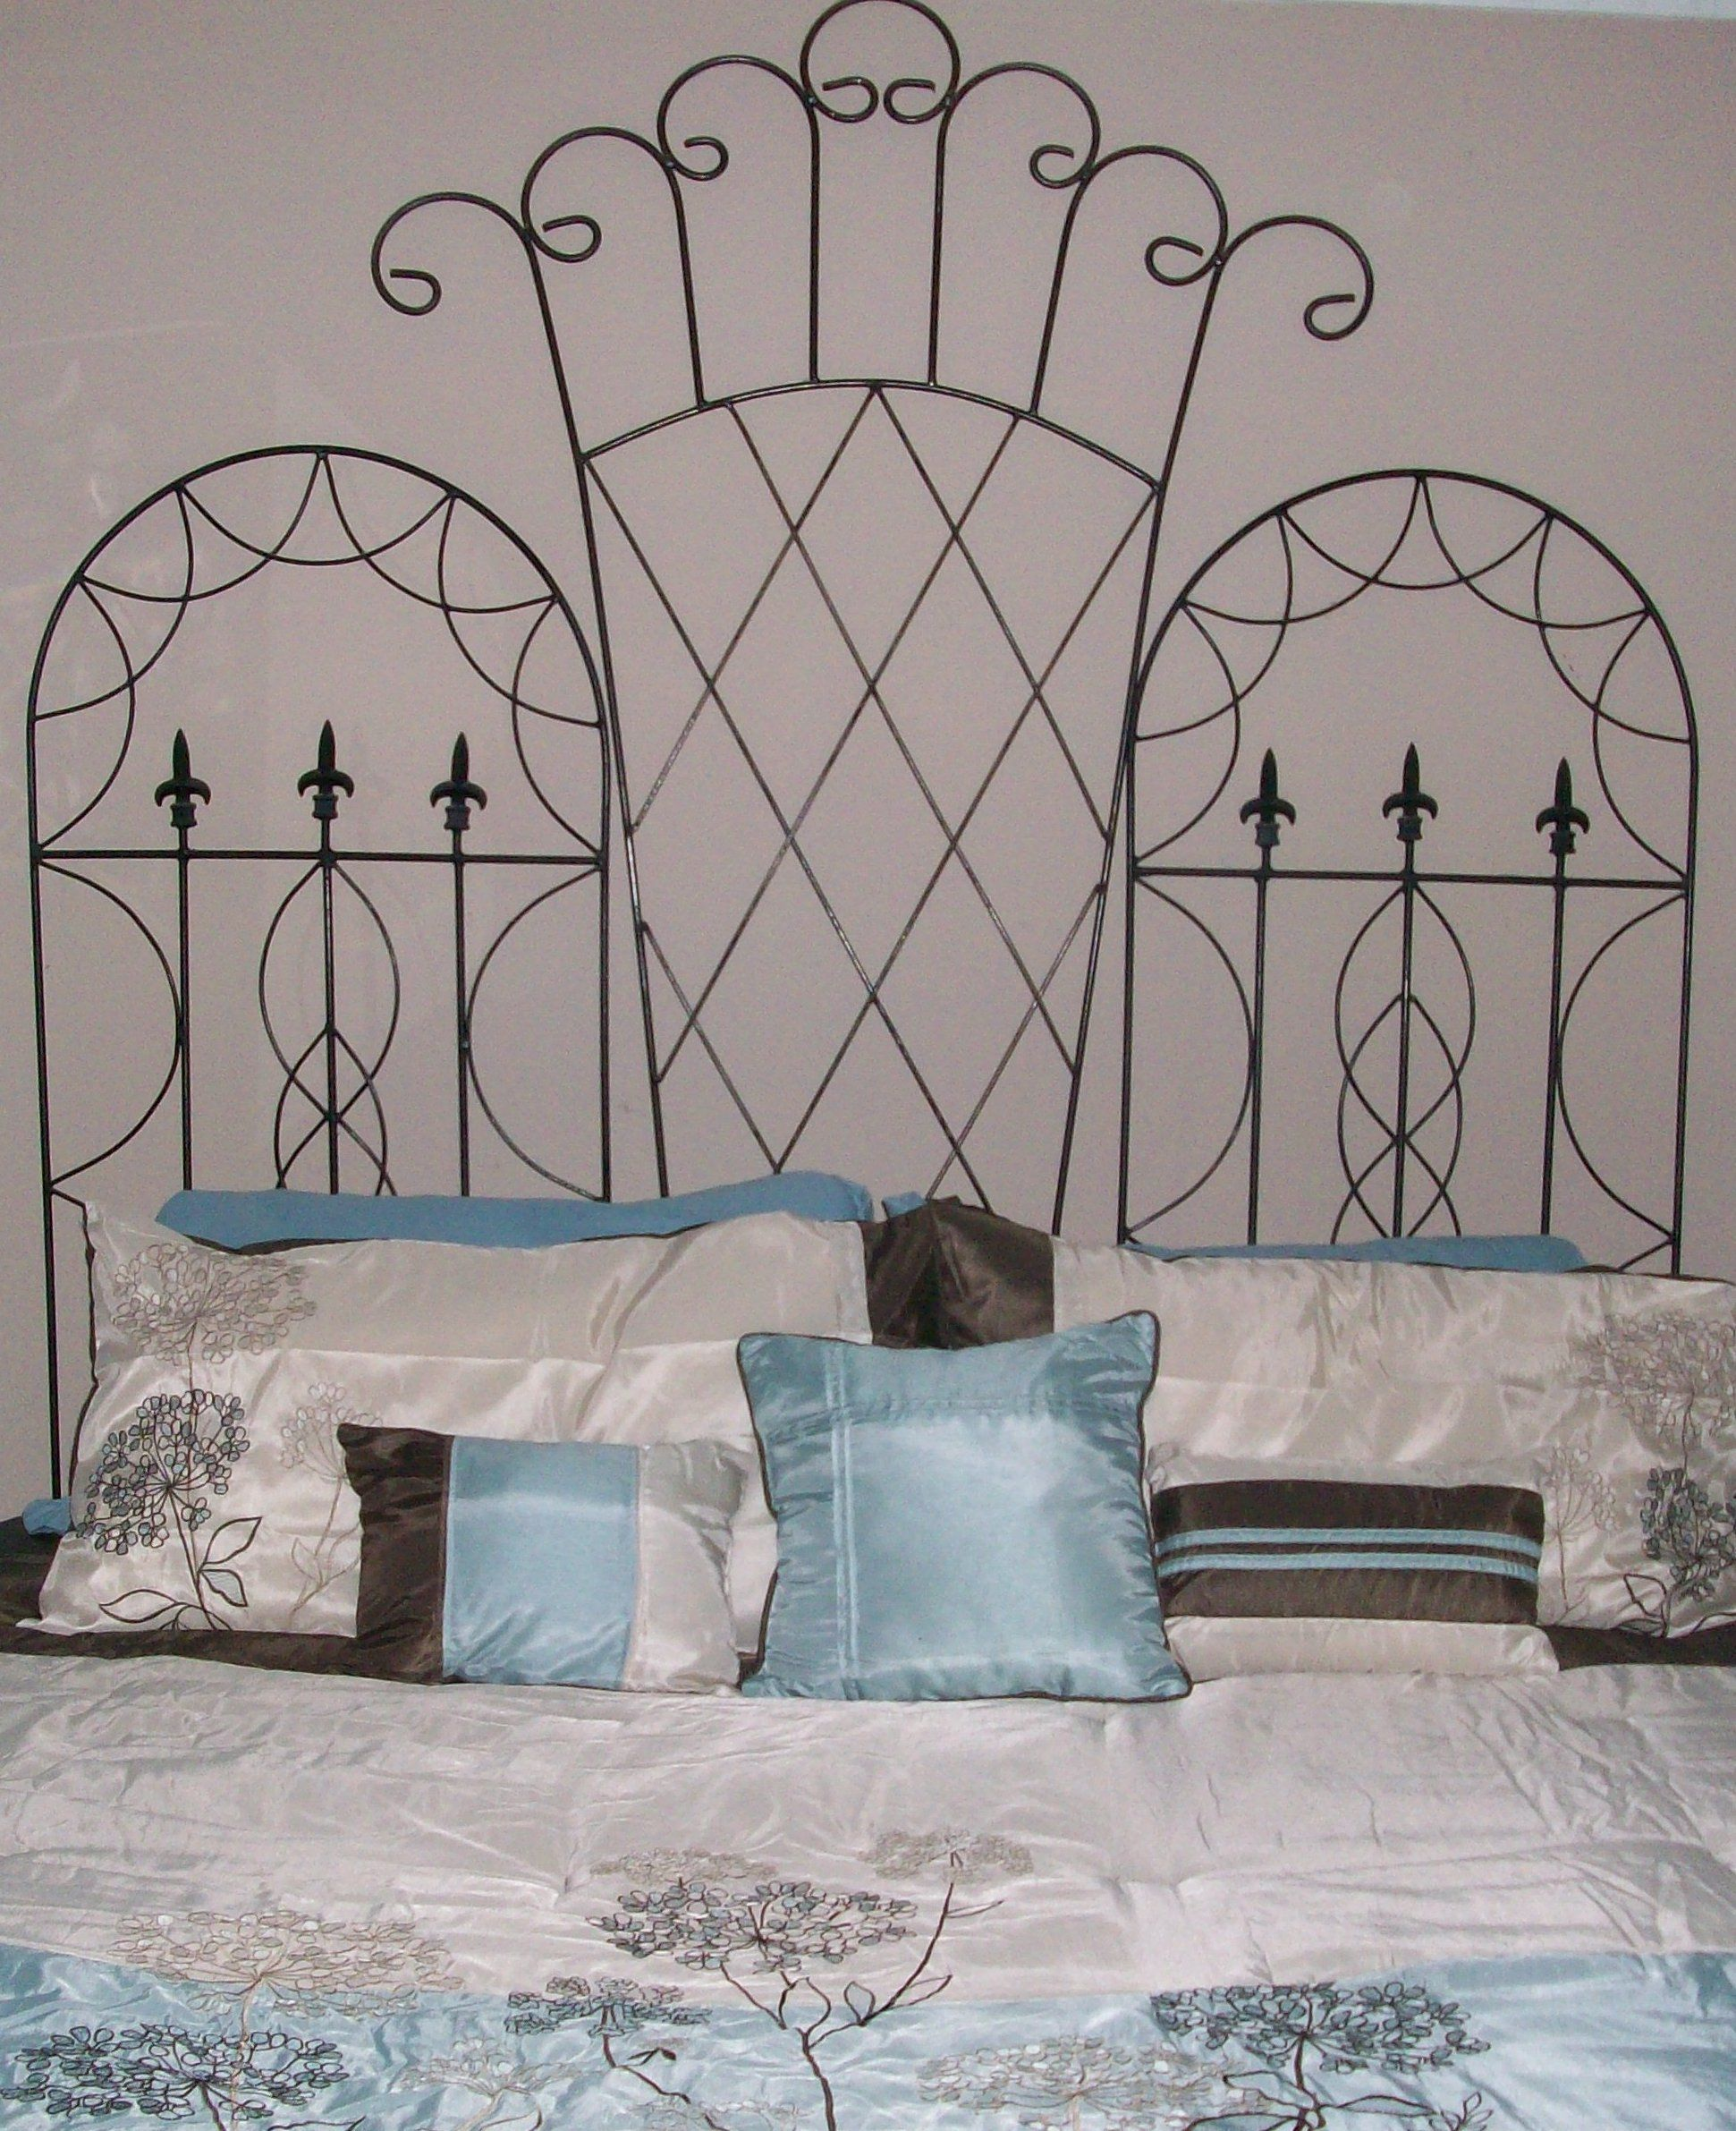 We had a king size bed with no headboard and a large